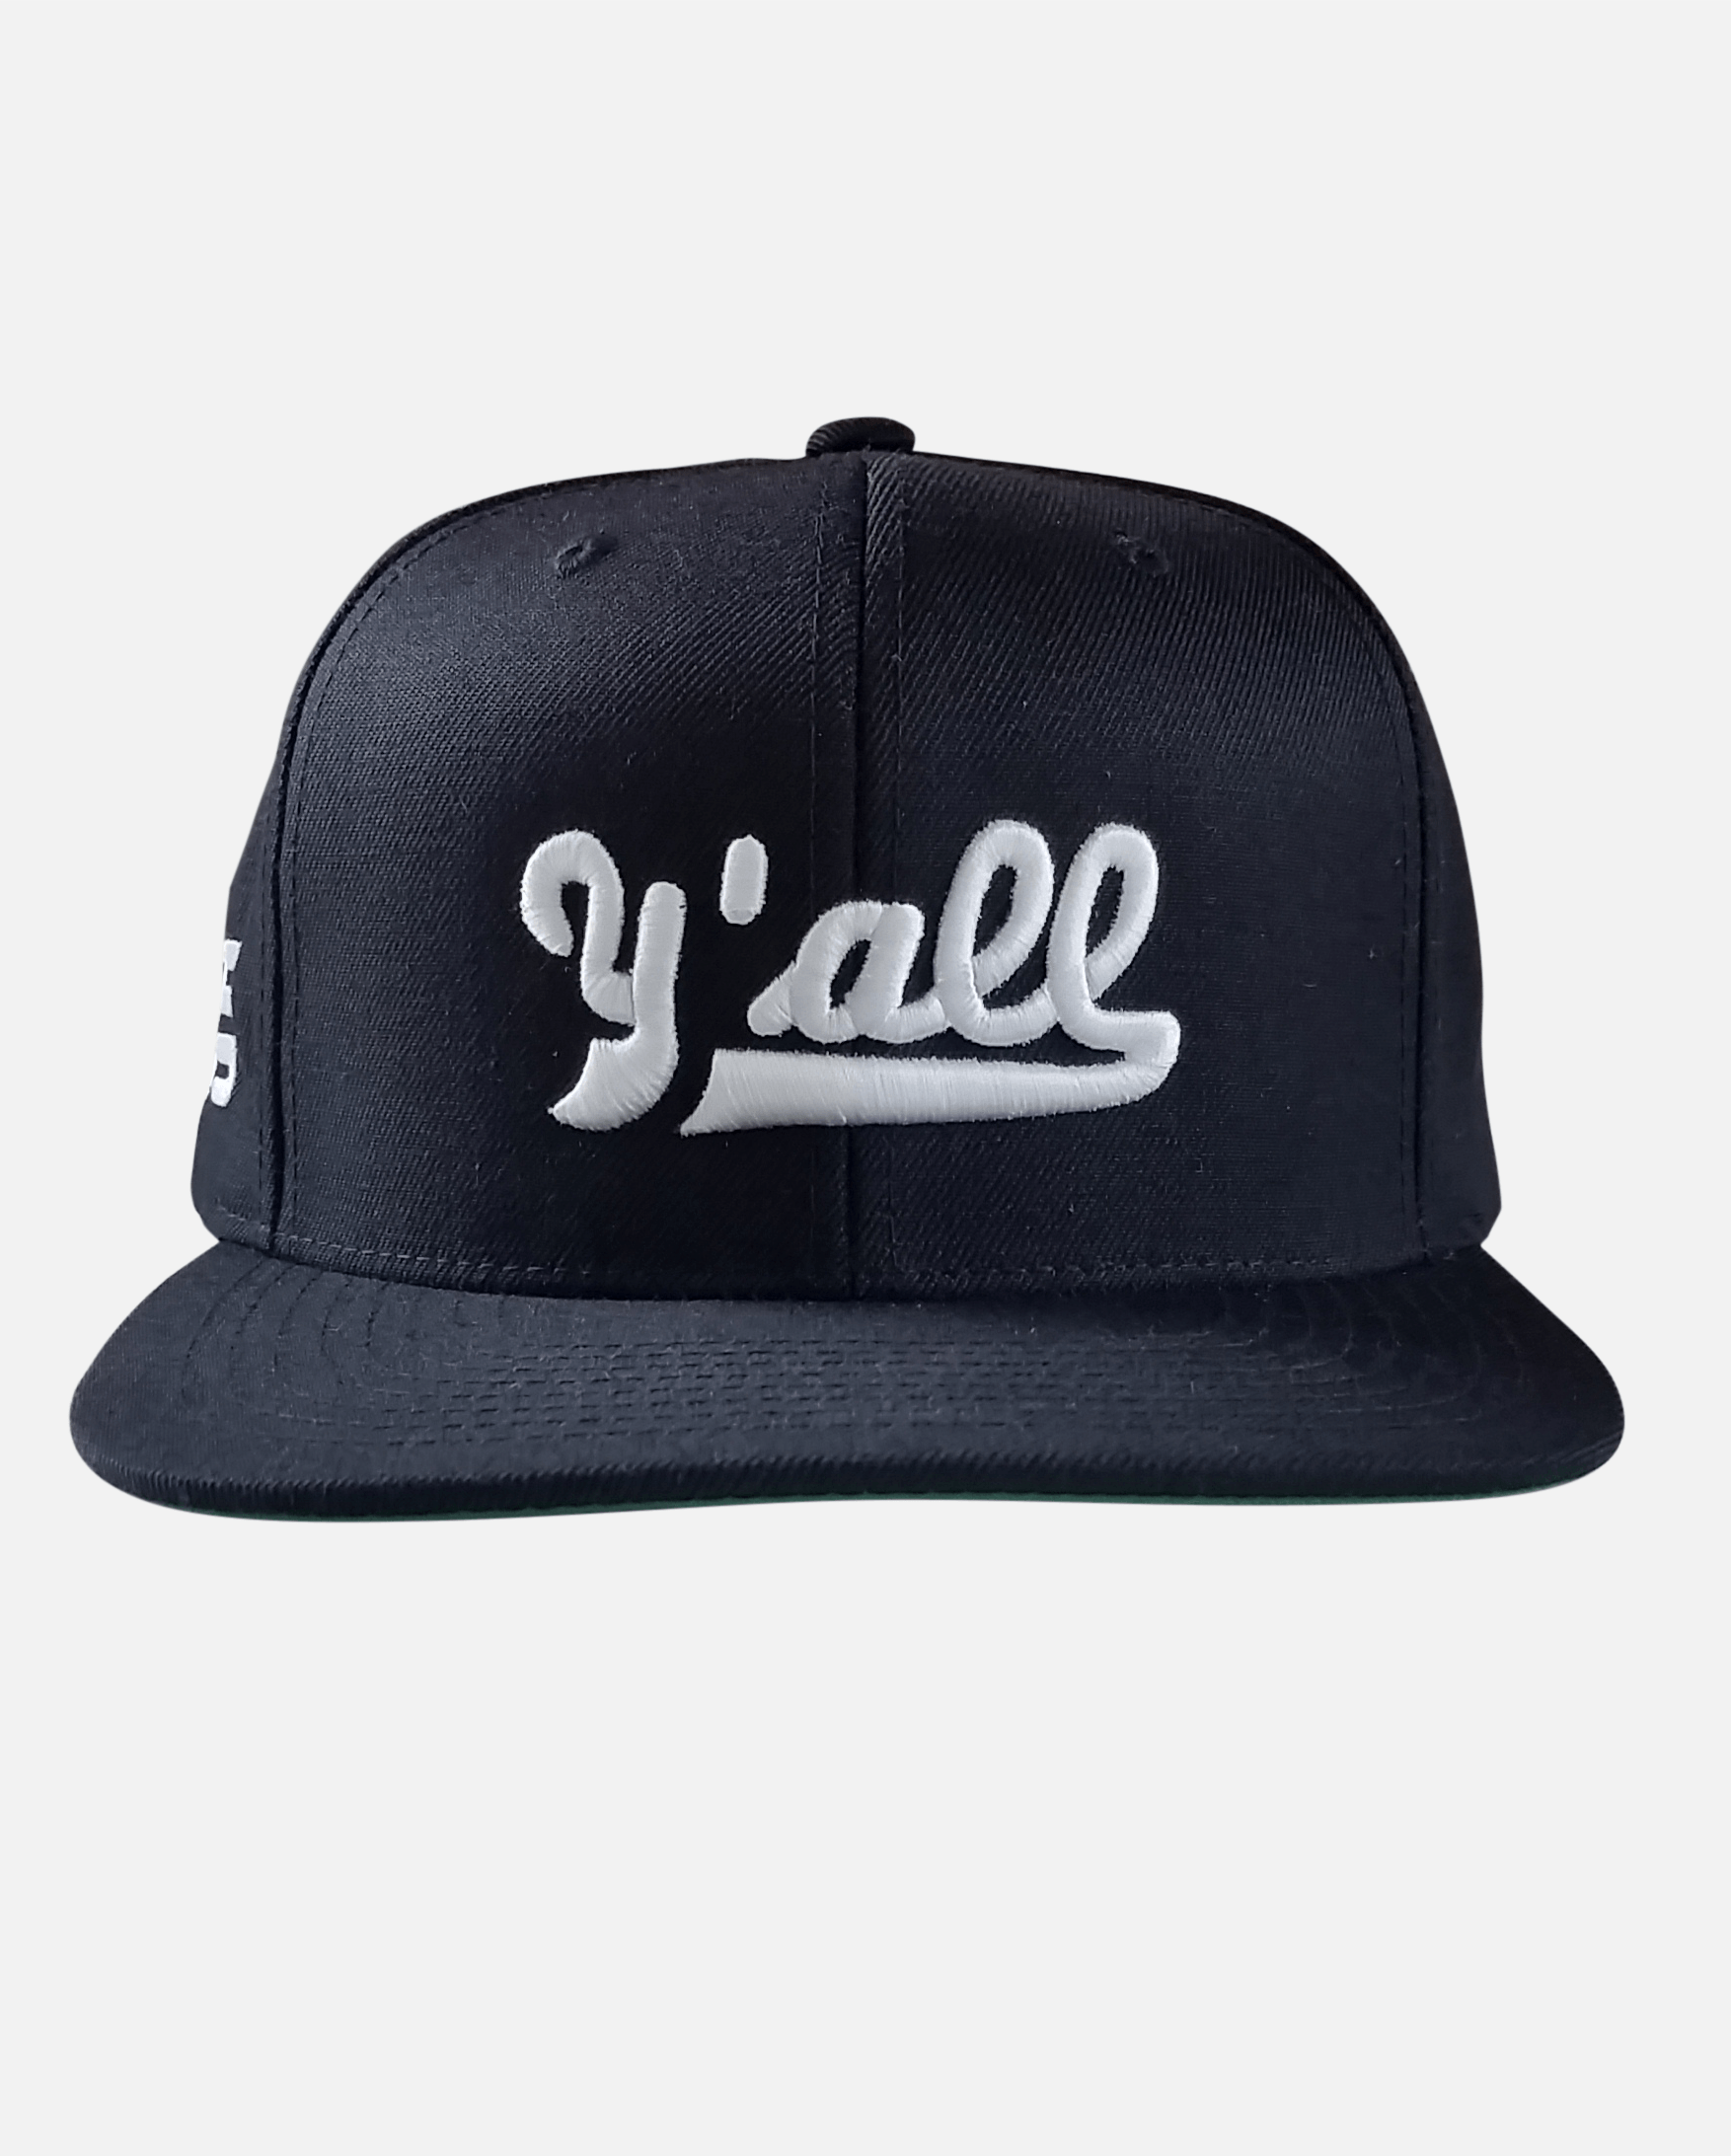 Y'all Hat (Black) - Southern Anthem - Ghimicelli